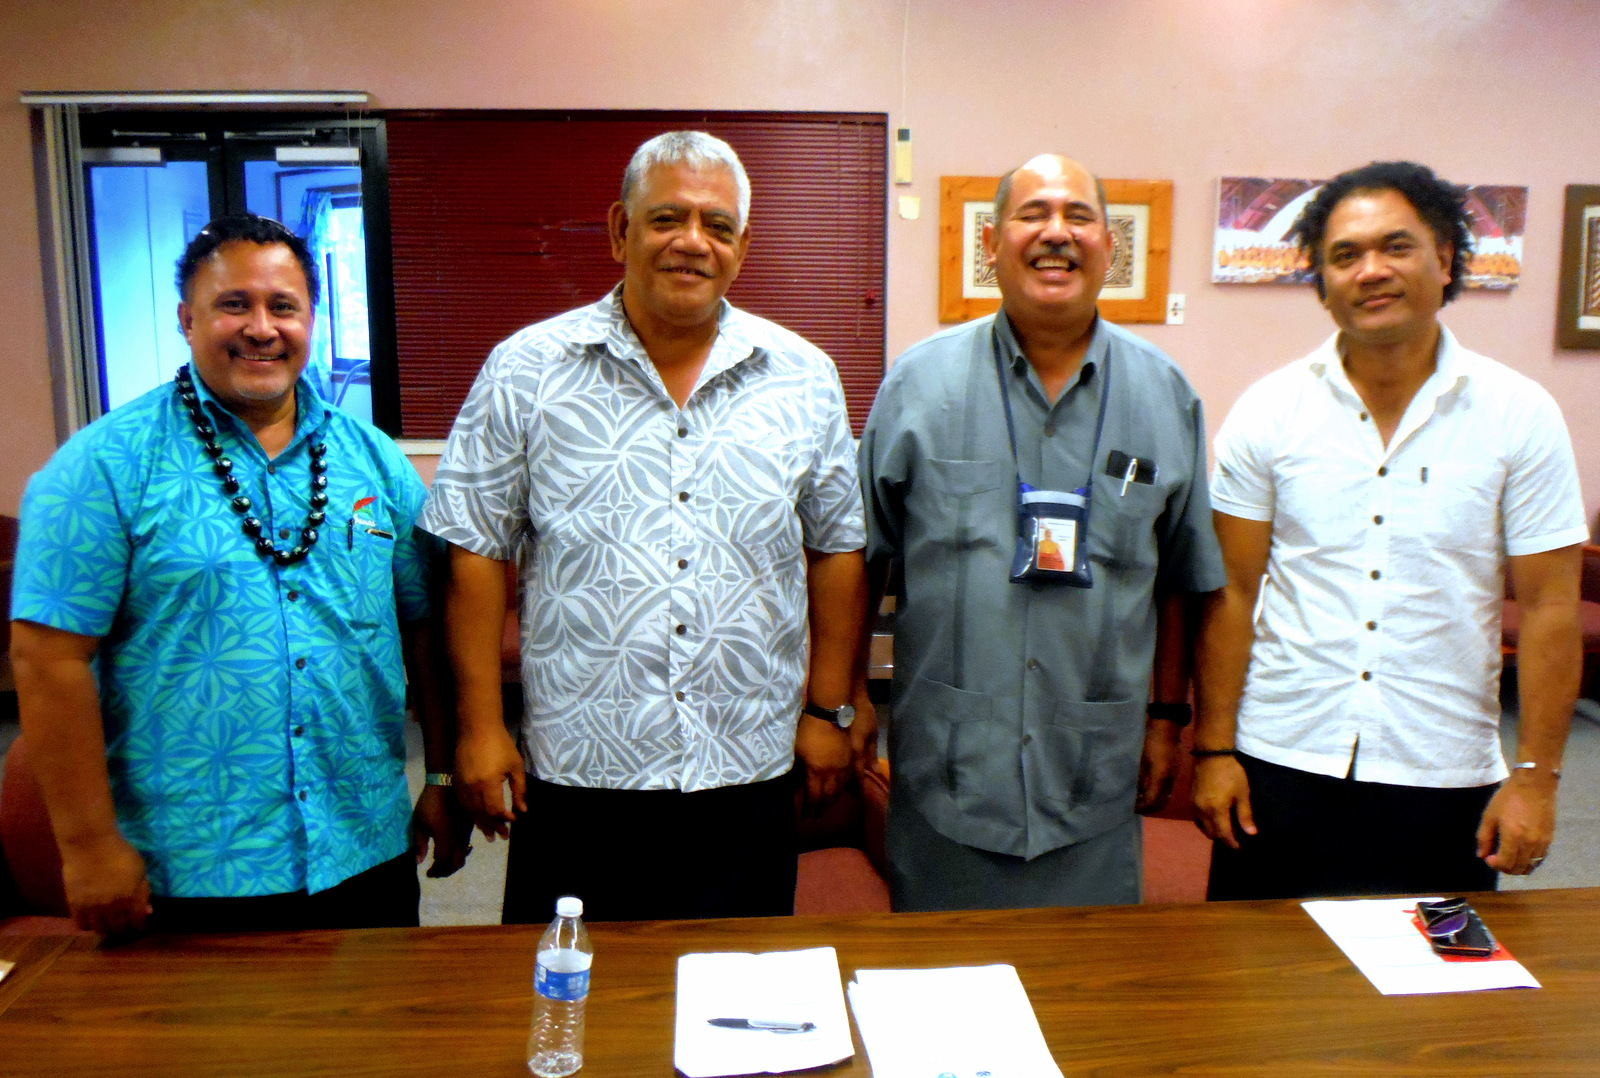 ASCC welcomes visitors from the Independent State of Samoa's environmental ministries